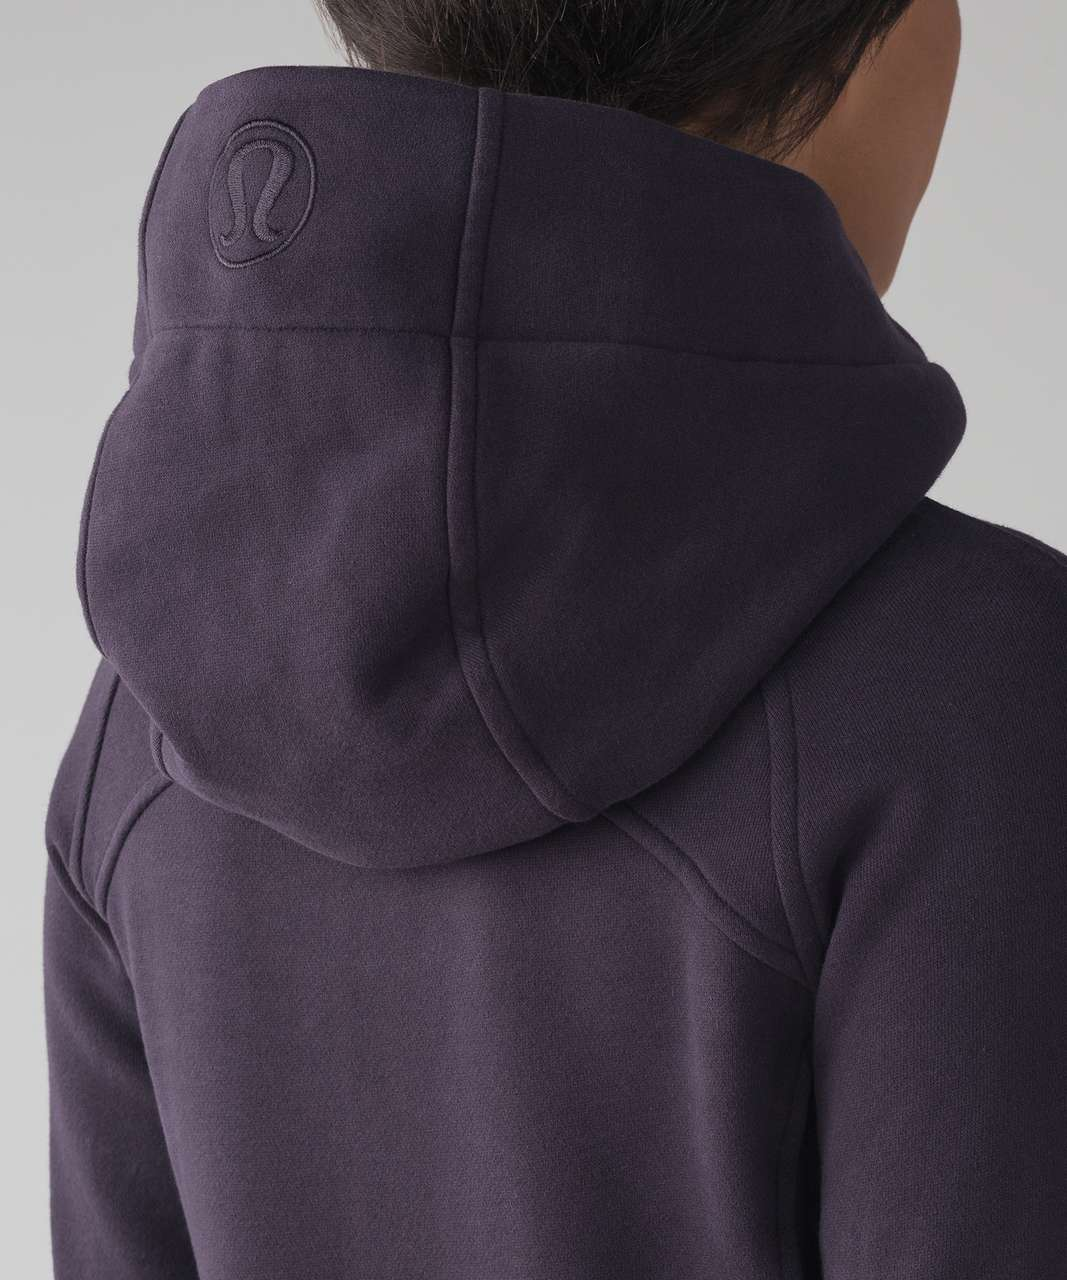 Lululemon Scuba Hoodie *Light Cotton Fleece - Boysenberry